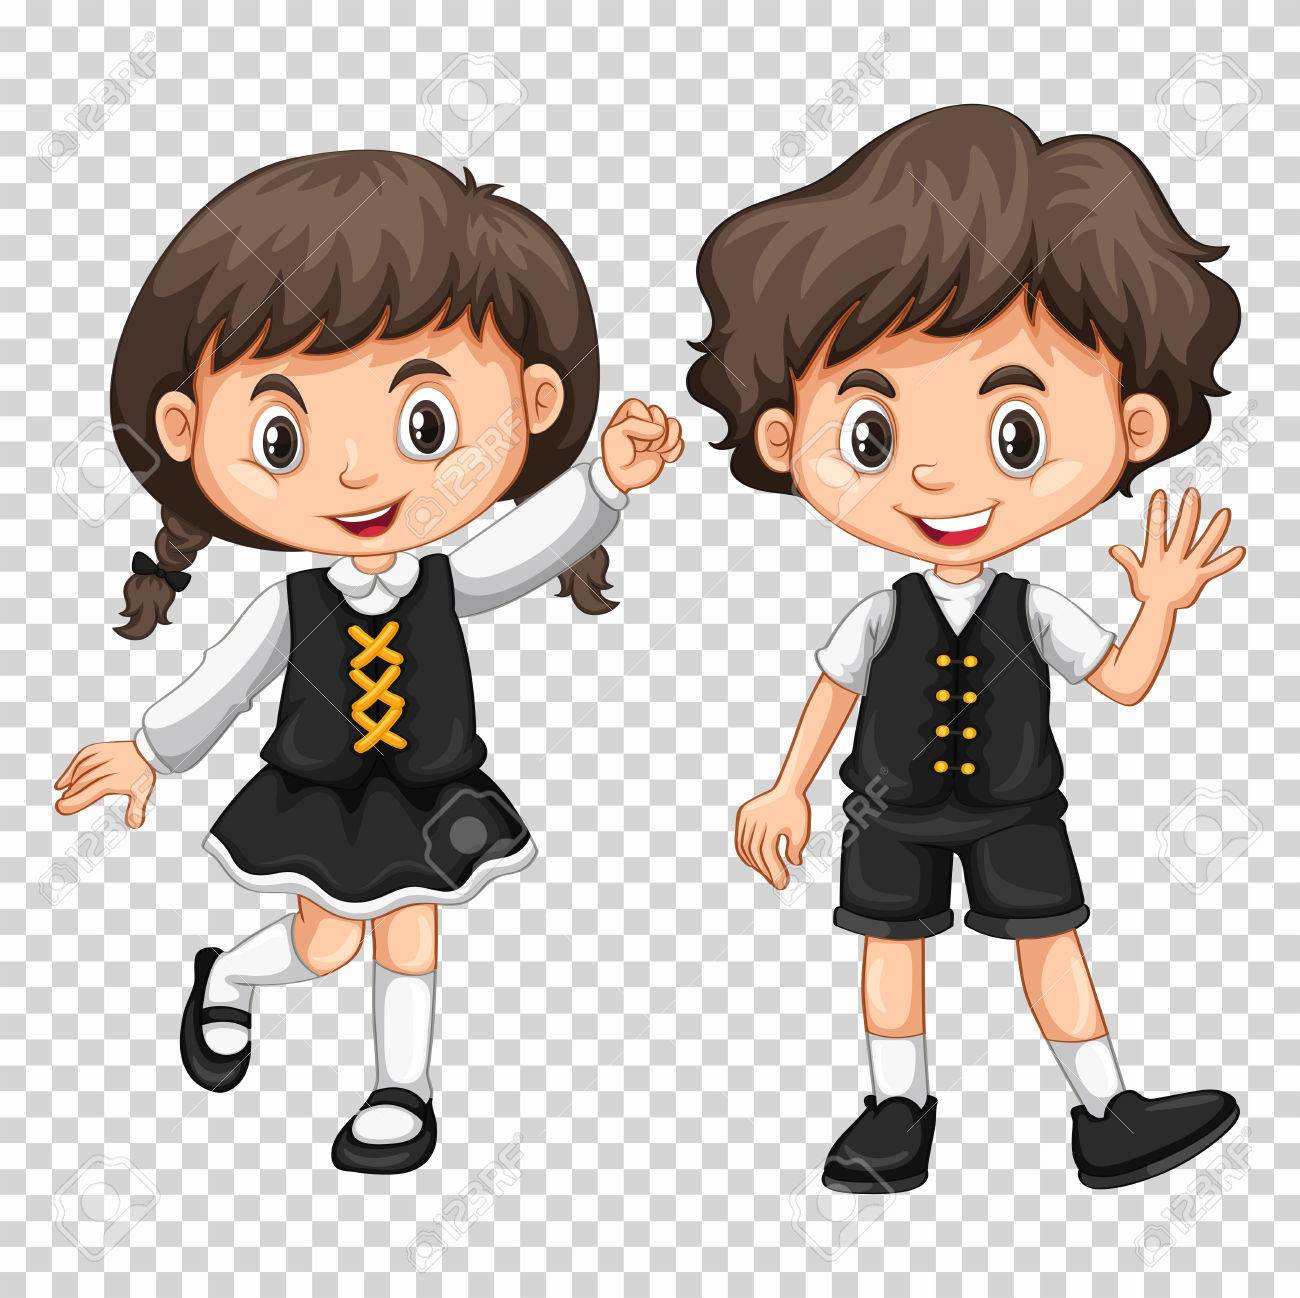 Boy and girl with black hair illustration.